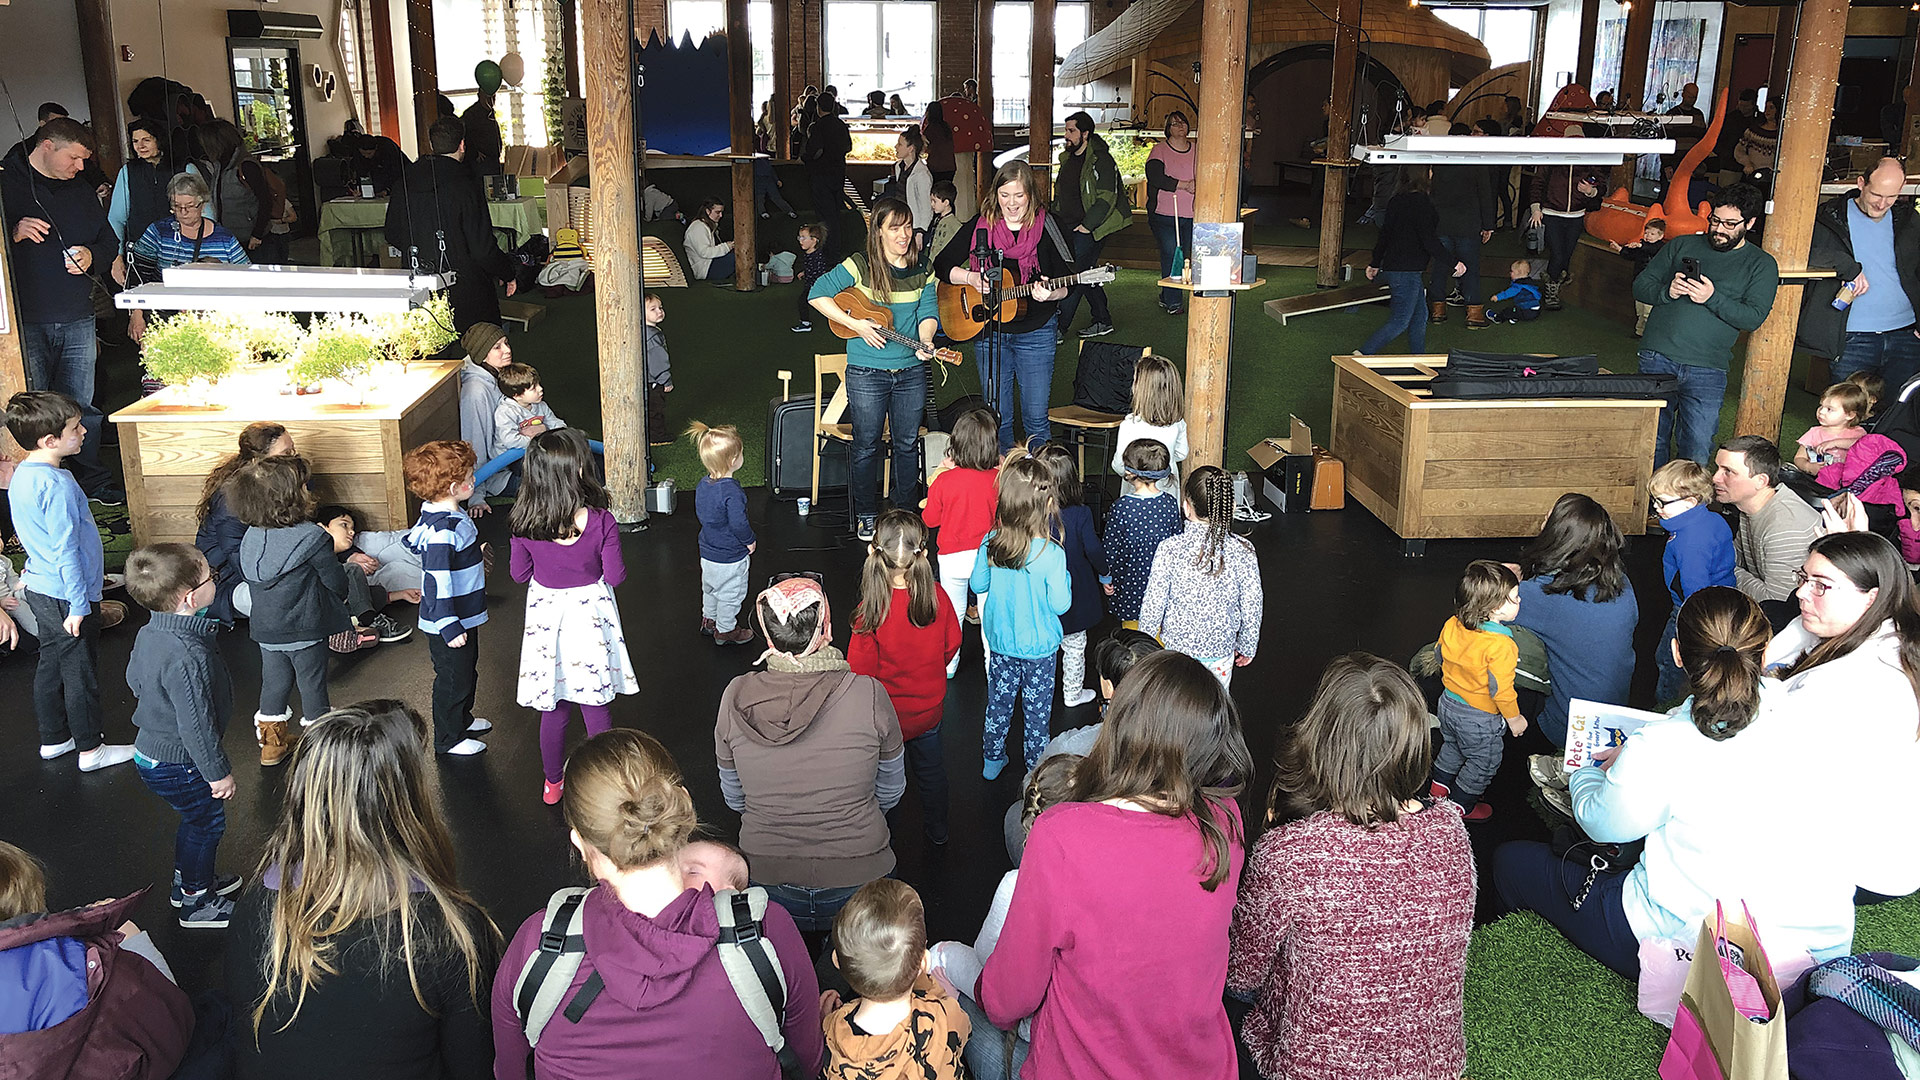 the children's musical group Little Roots performs at the event